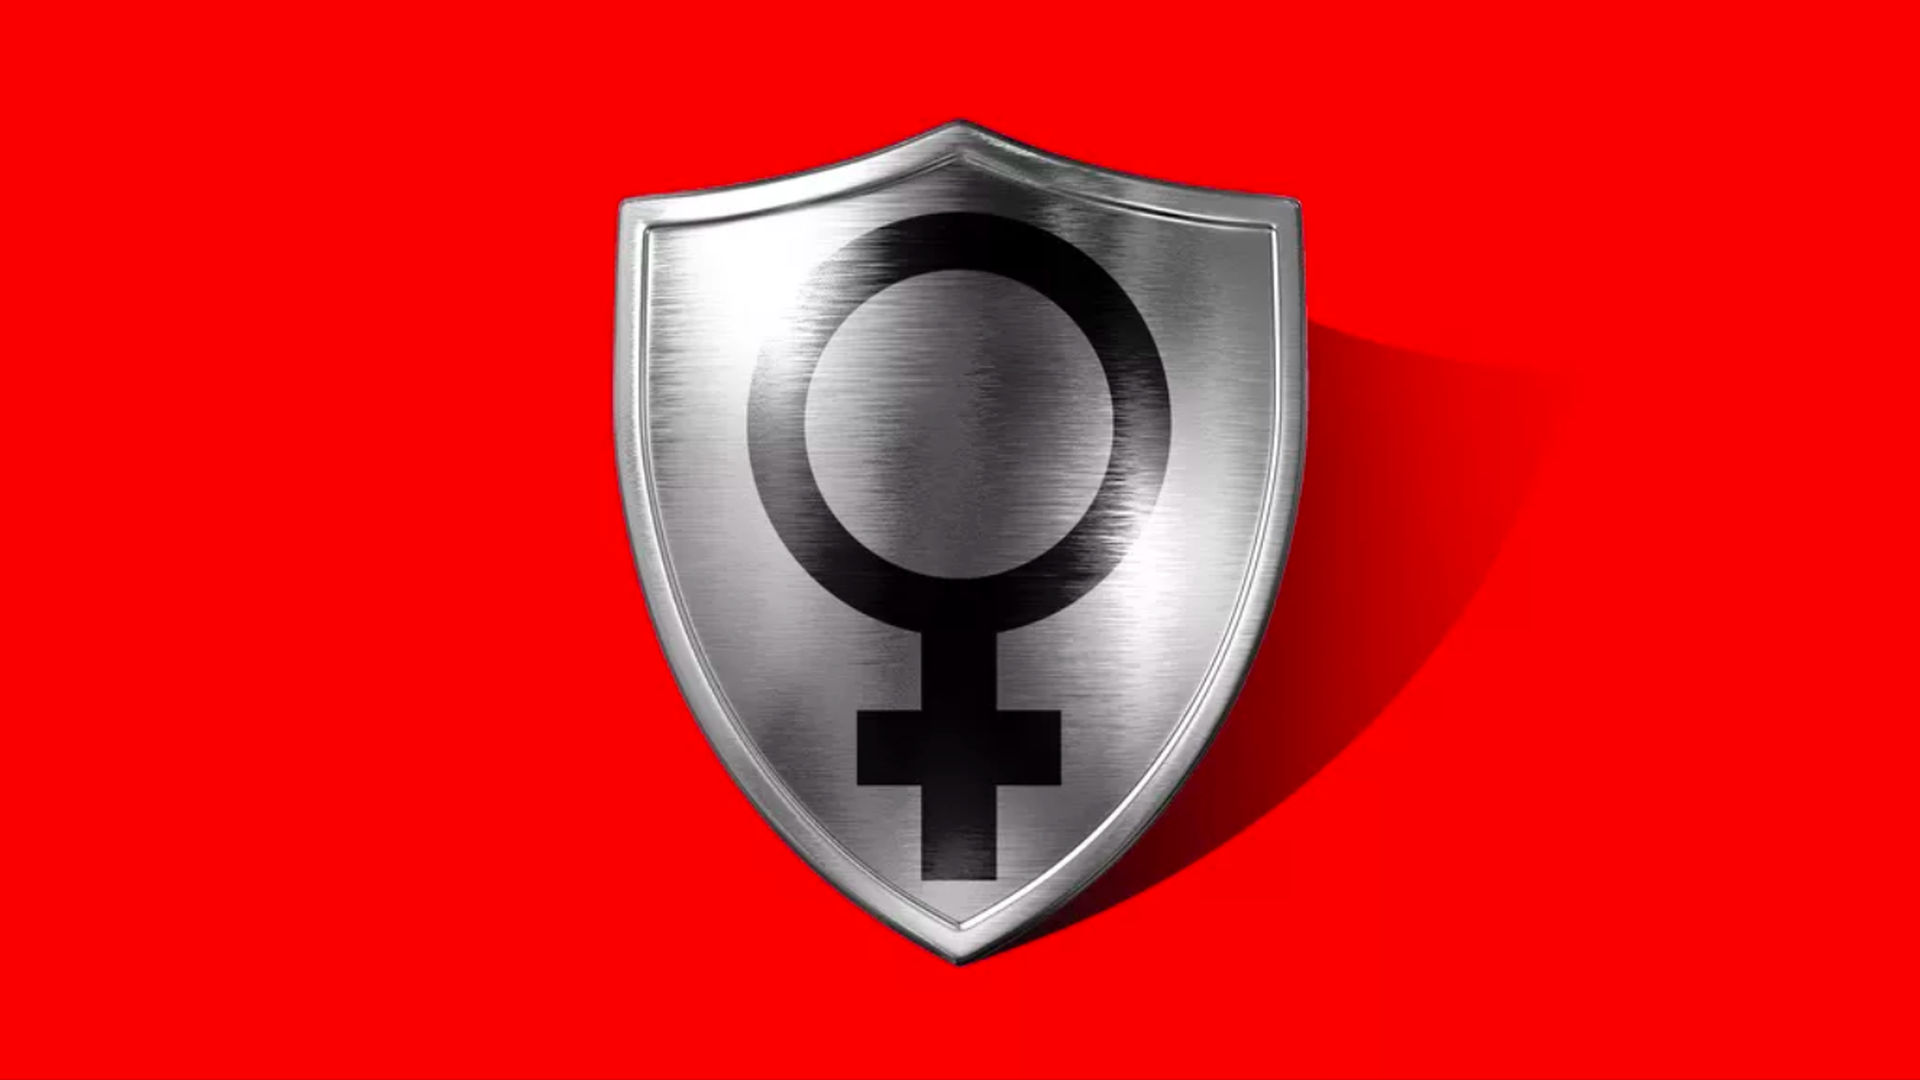 This illustration shows a metal shield emblazoned with the female symbol on a red background.